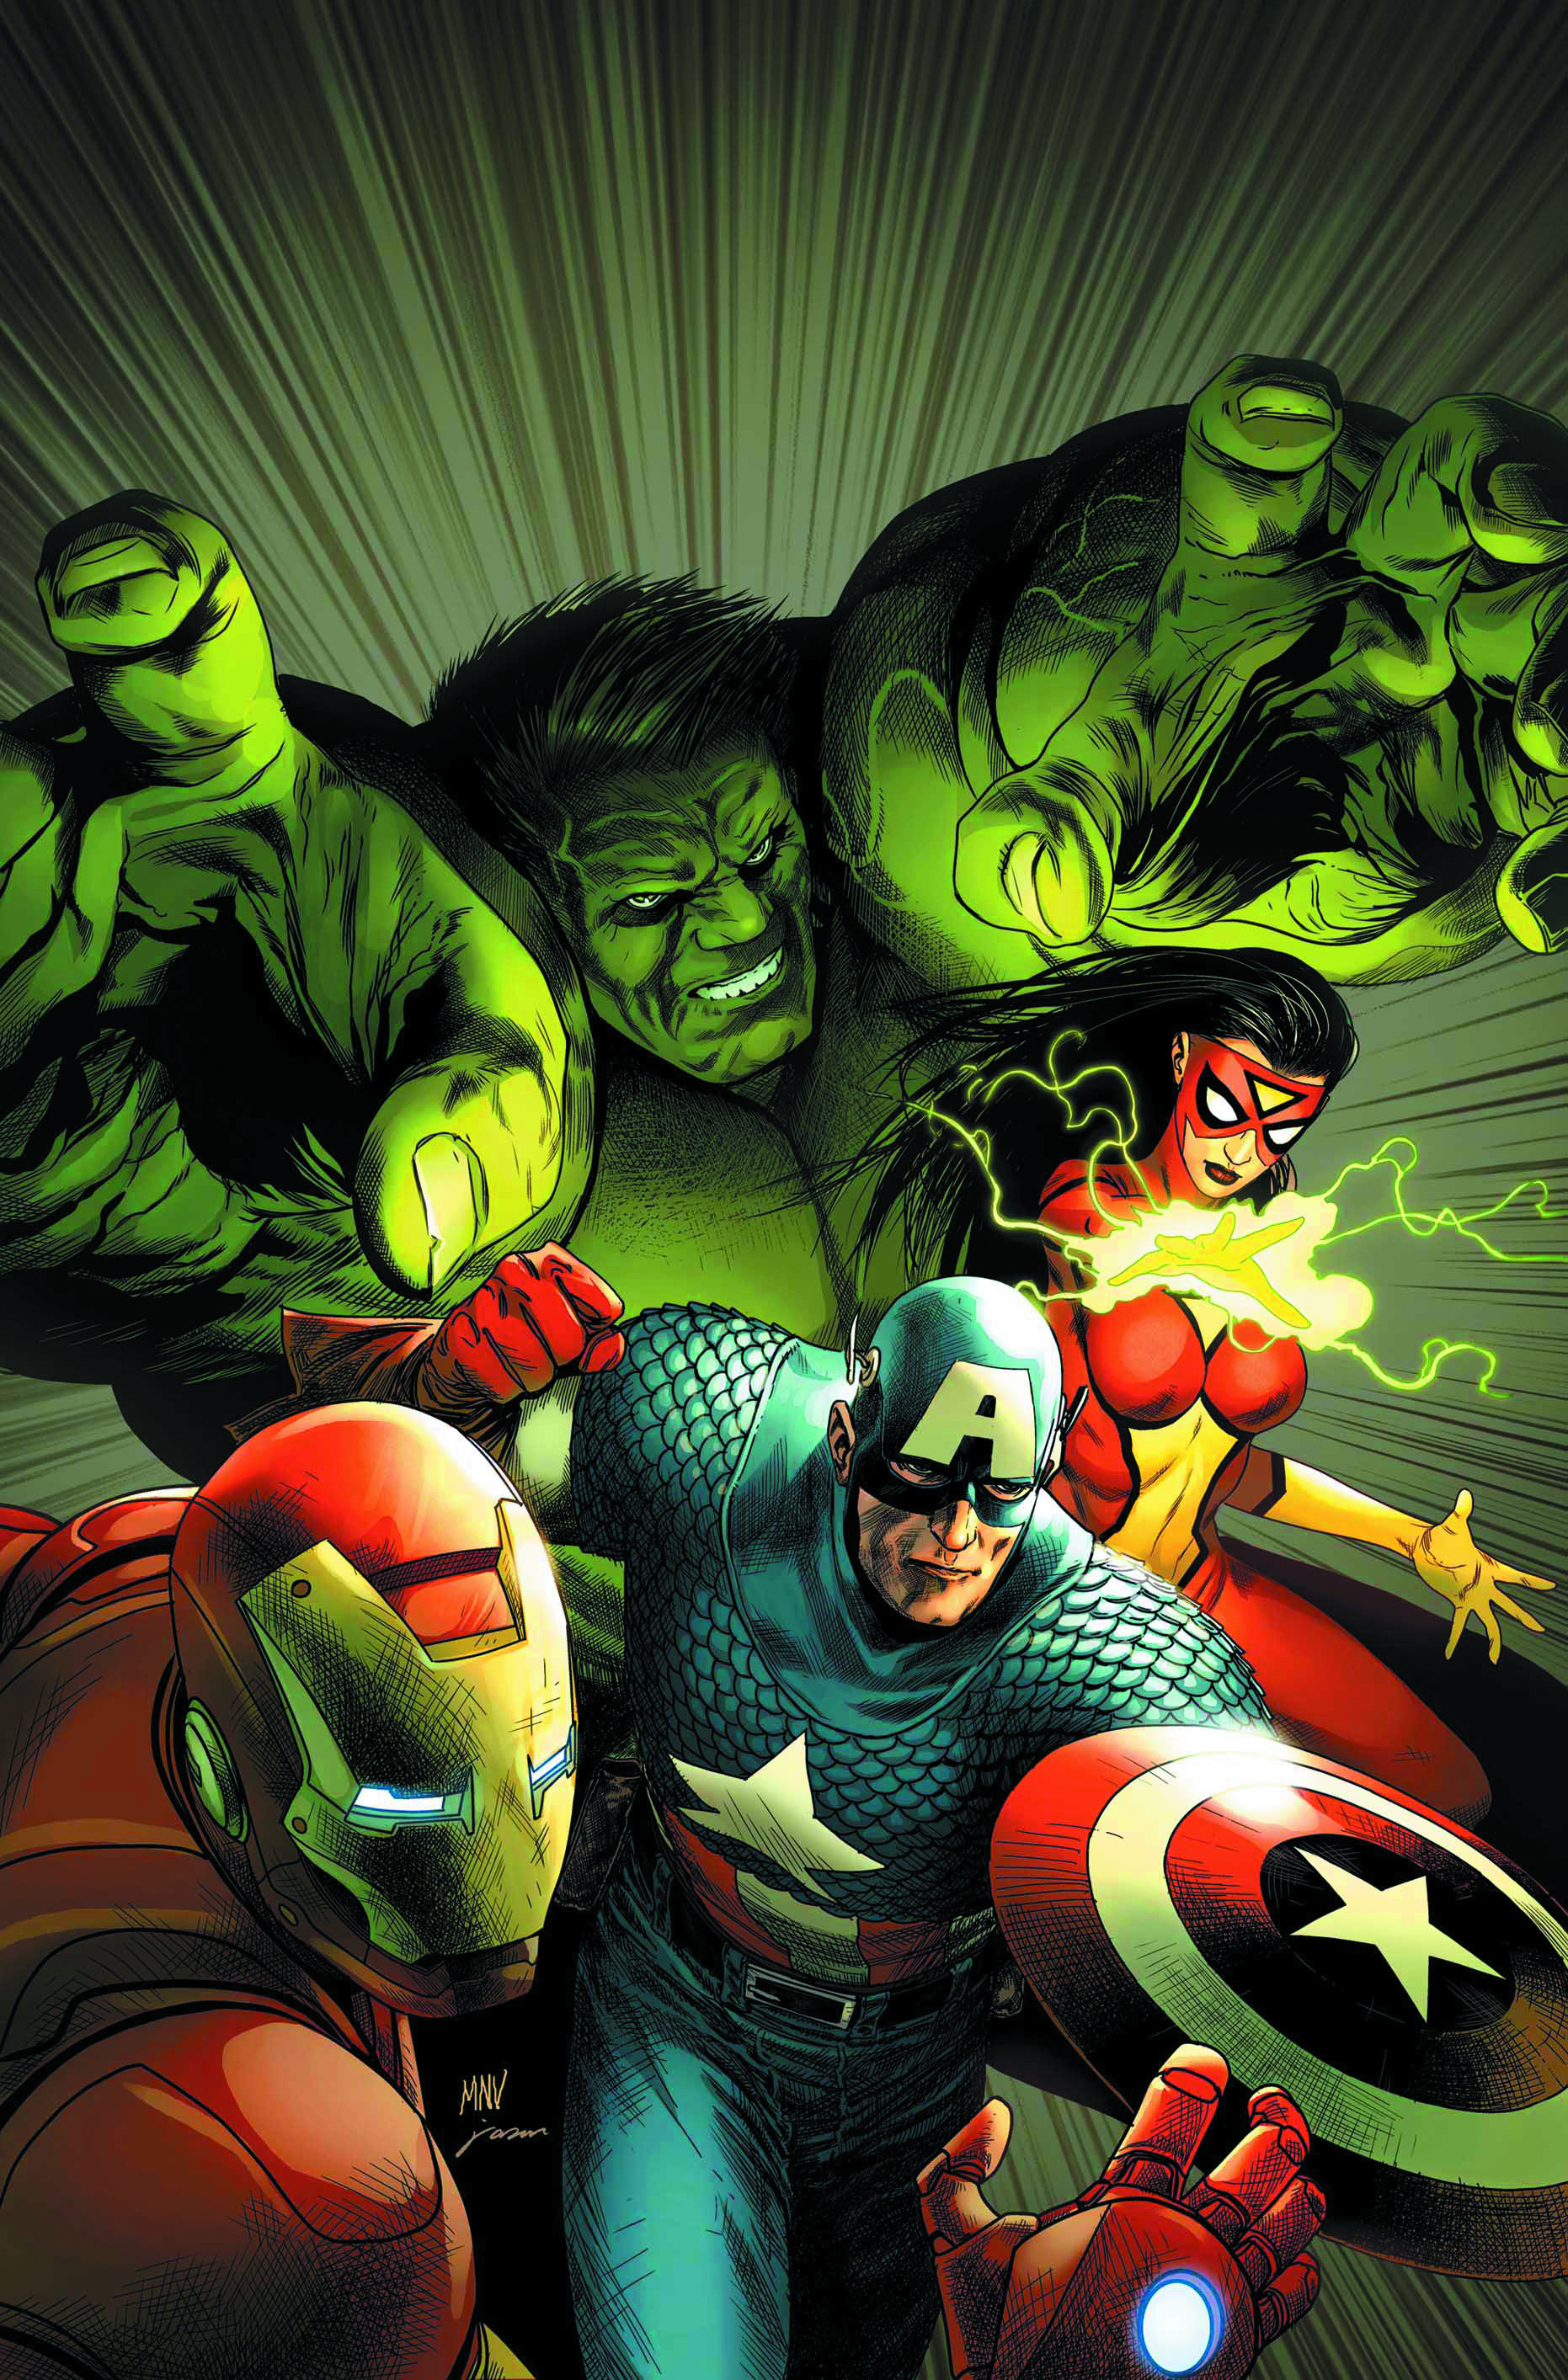 AVENGERS ASSEMBLE BY MCNIVEN POSTER NOW